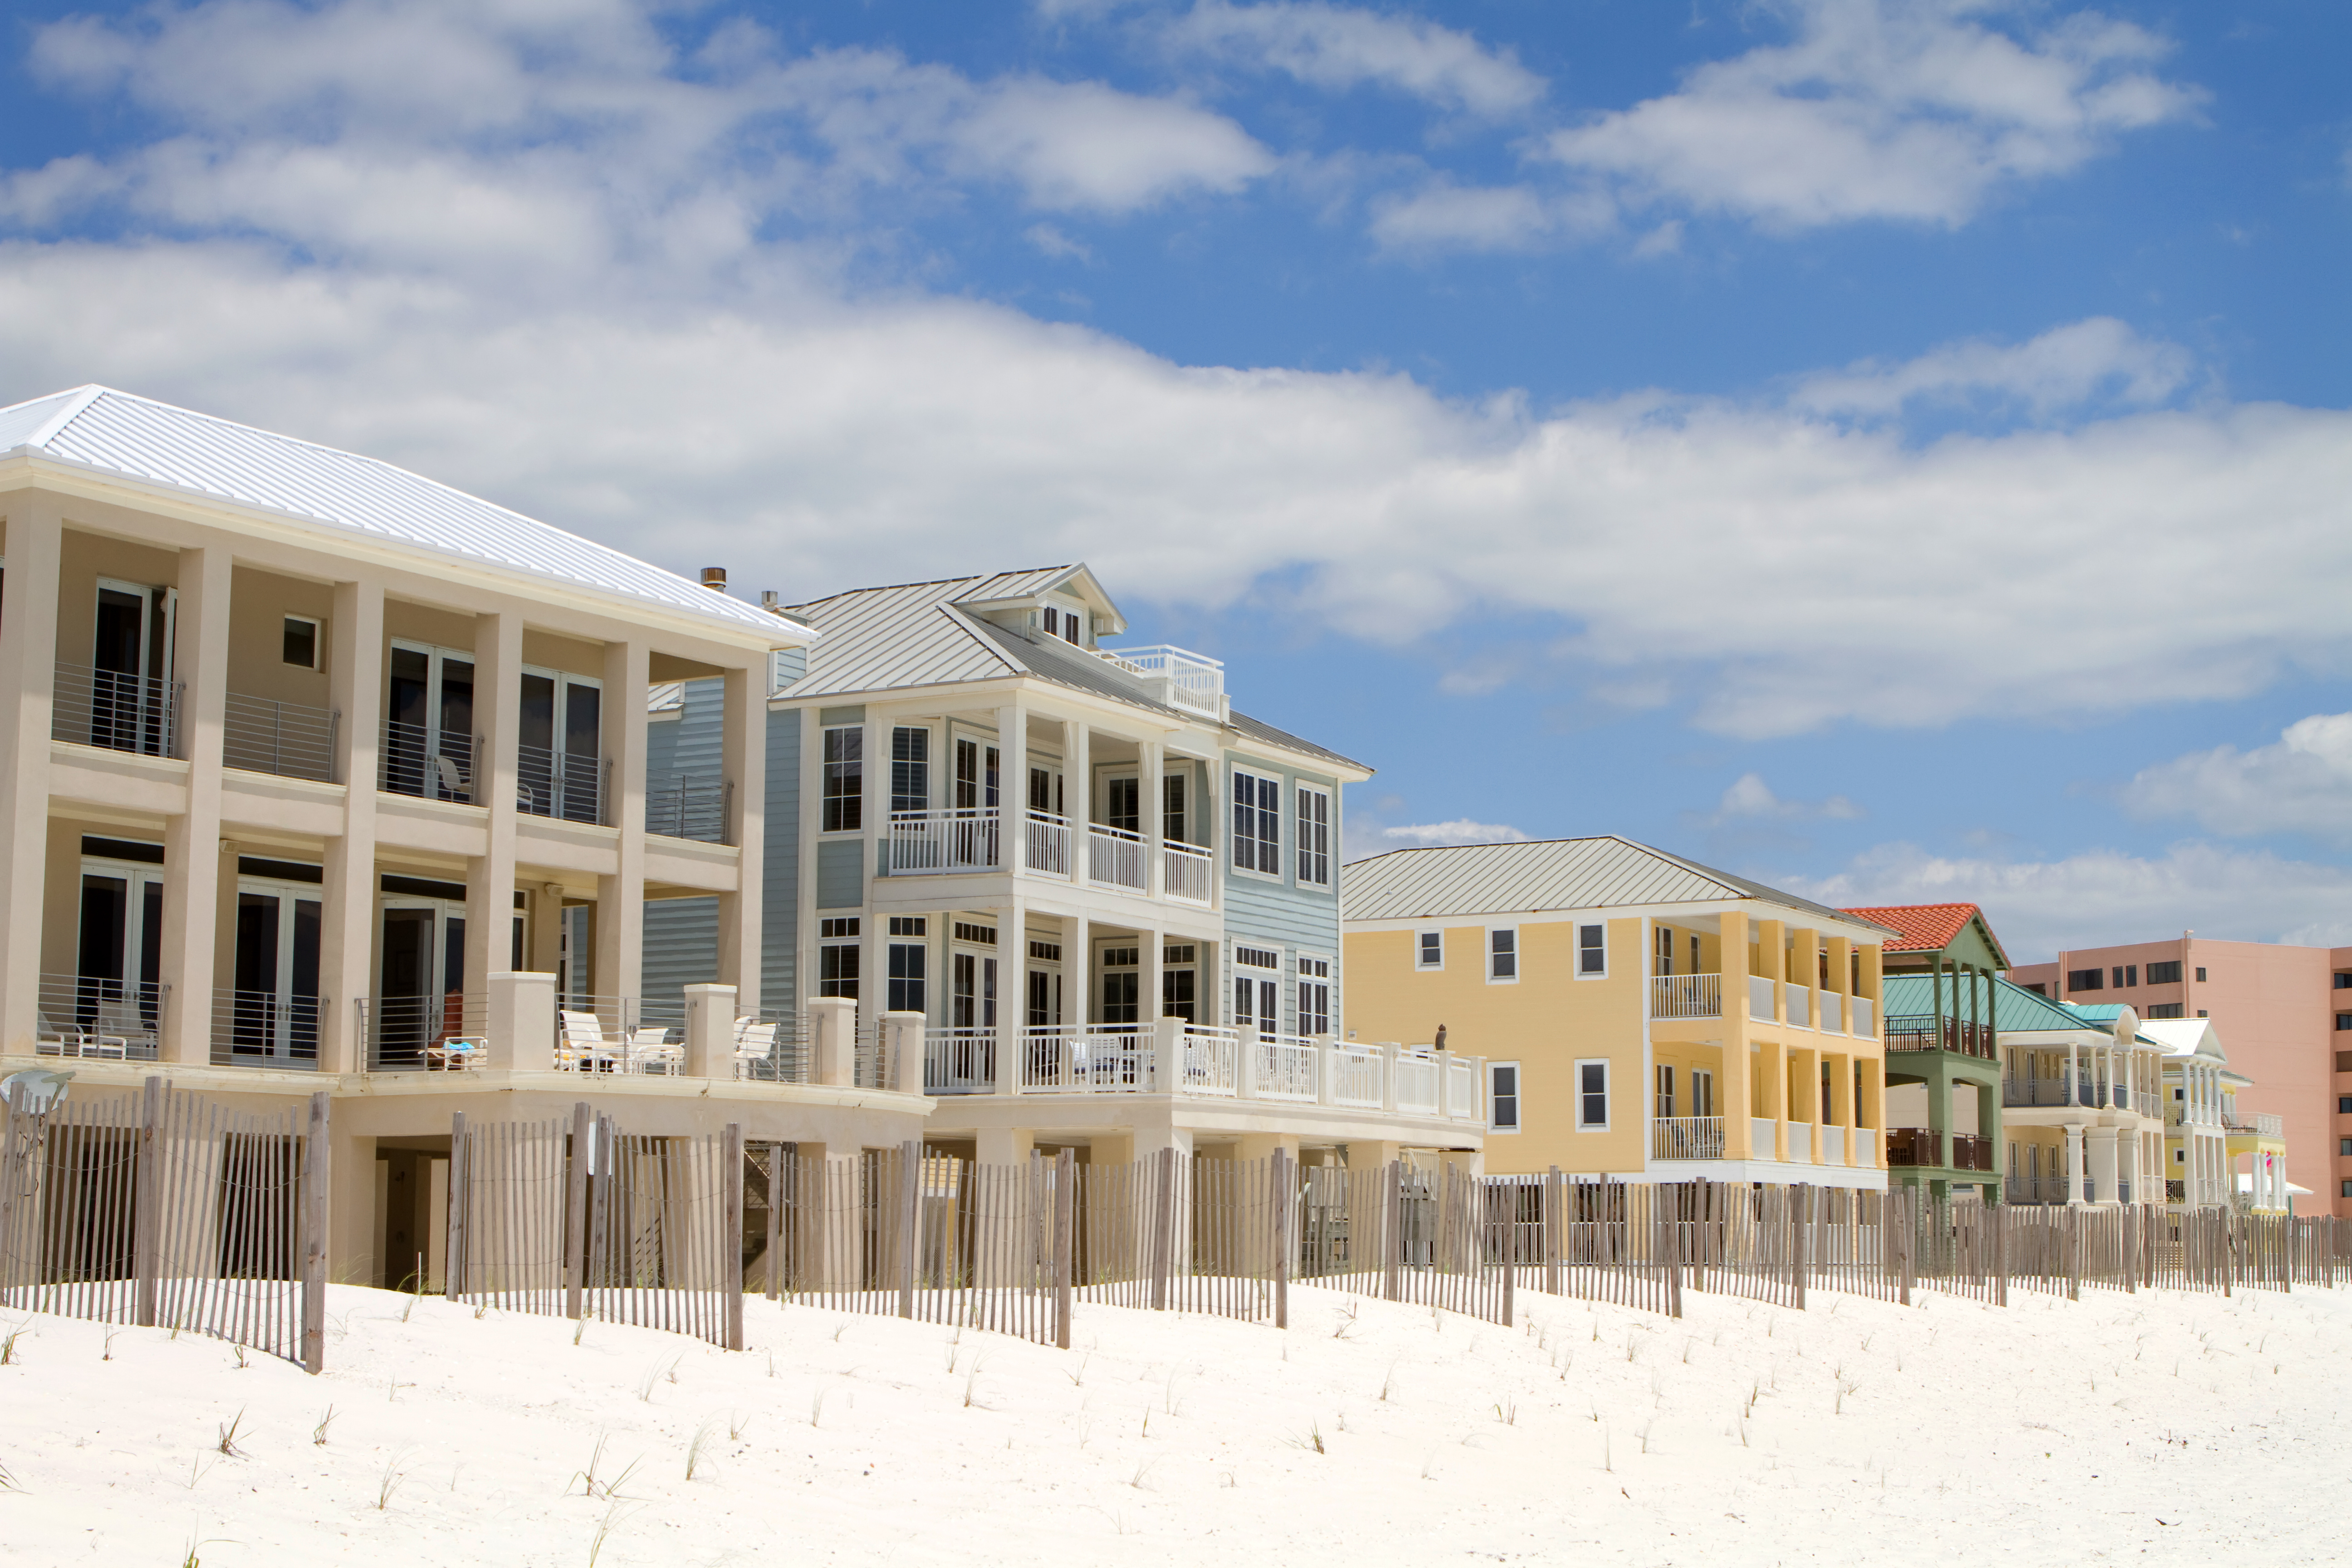 Expensive high end vacation beach homes and rentals built behind a small dune line and sand fences along the shoreline in Destin, Florida.